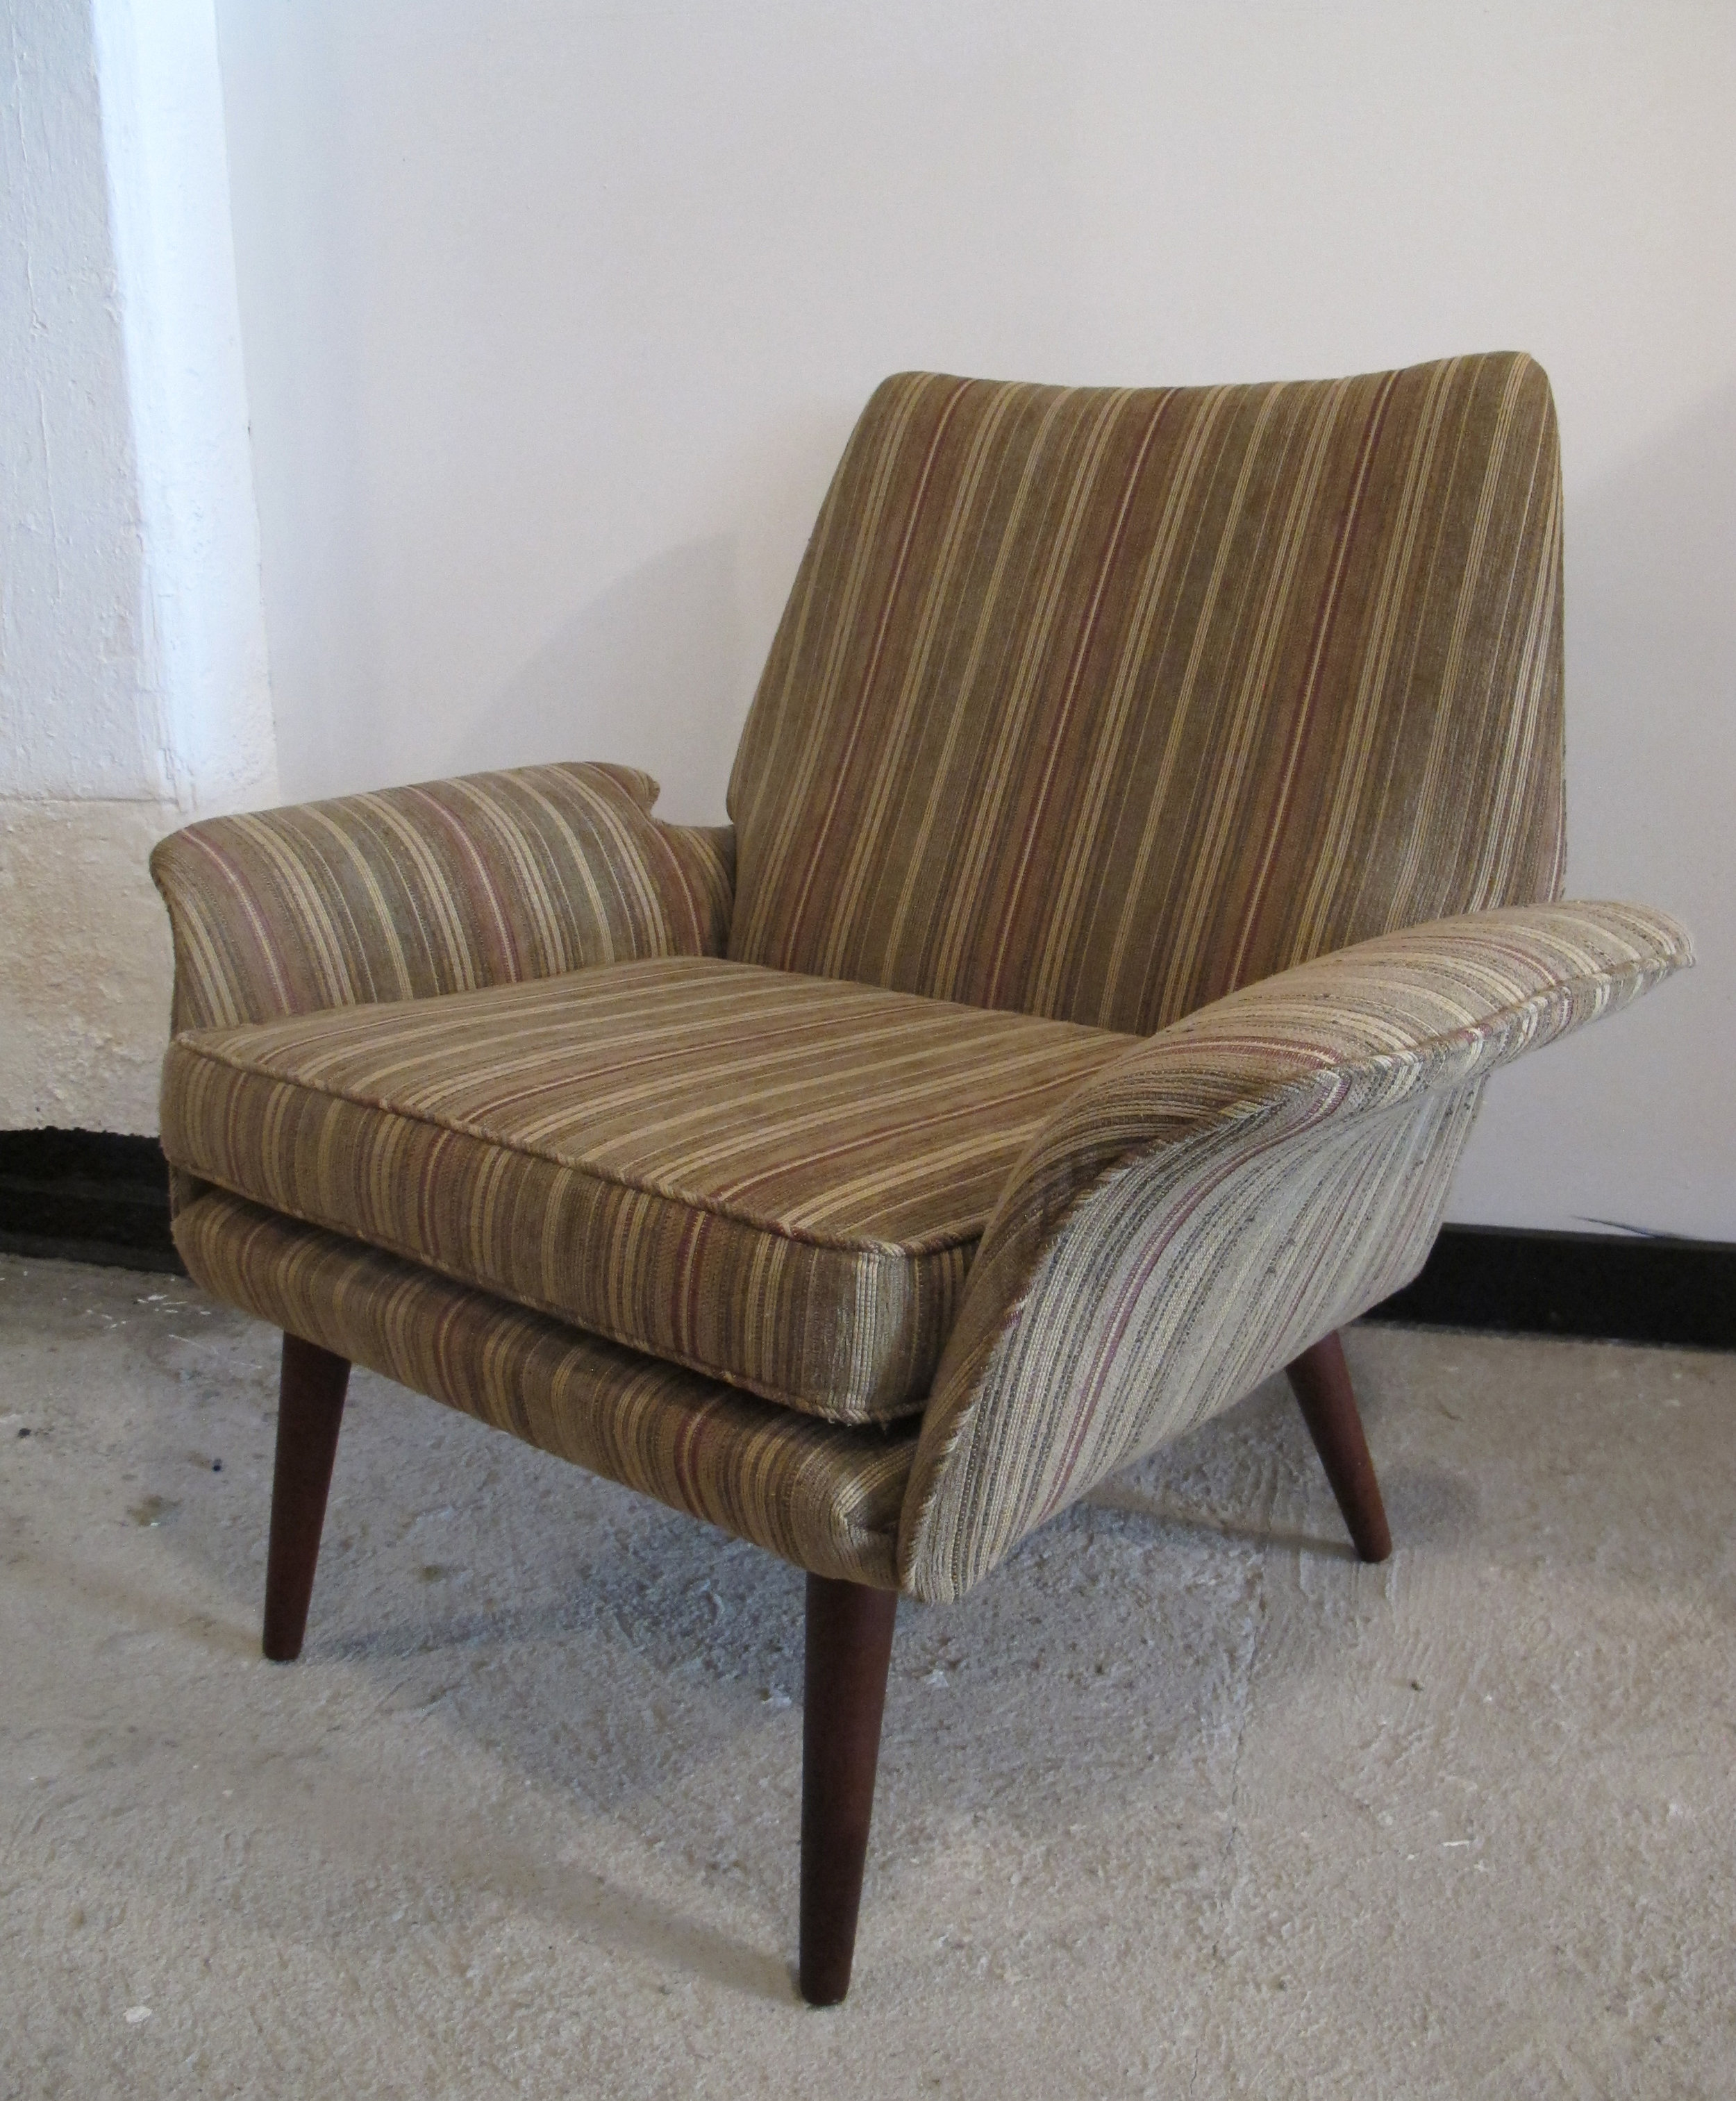 DANISH MODERN DUX STYLE UPHOLSTERED LOUNGE CHAIR